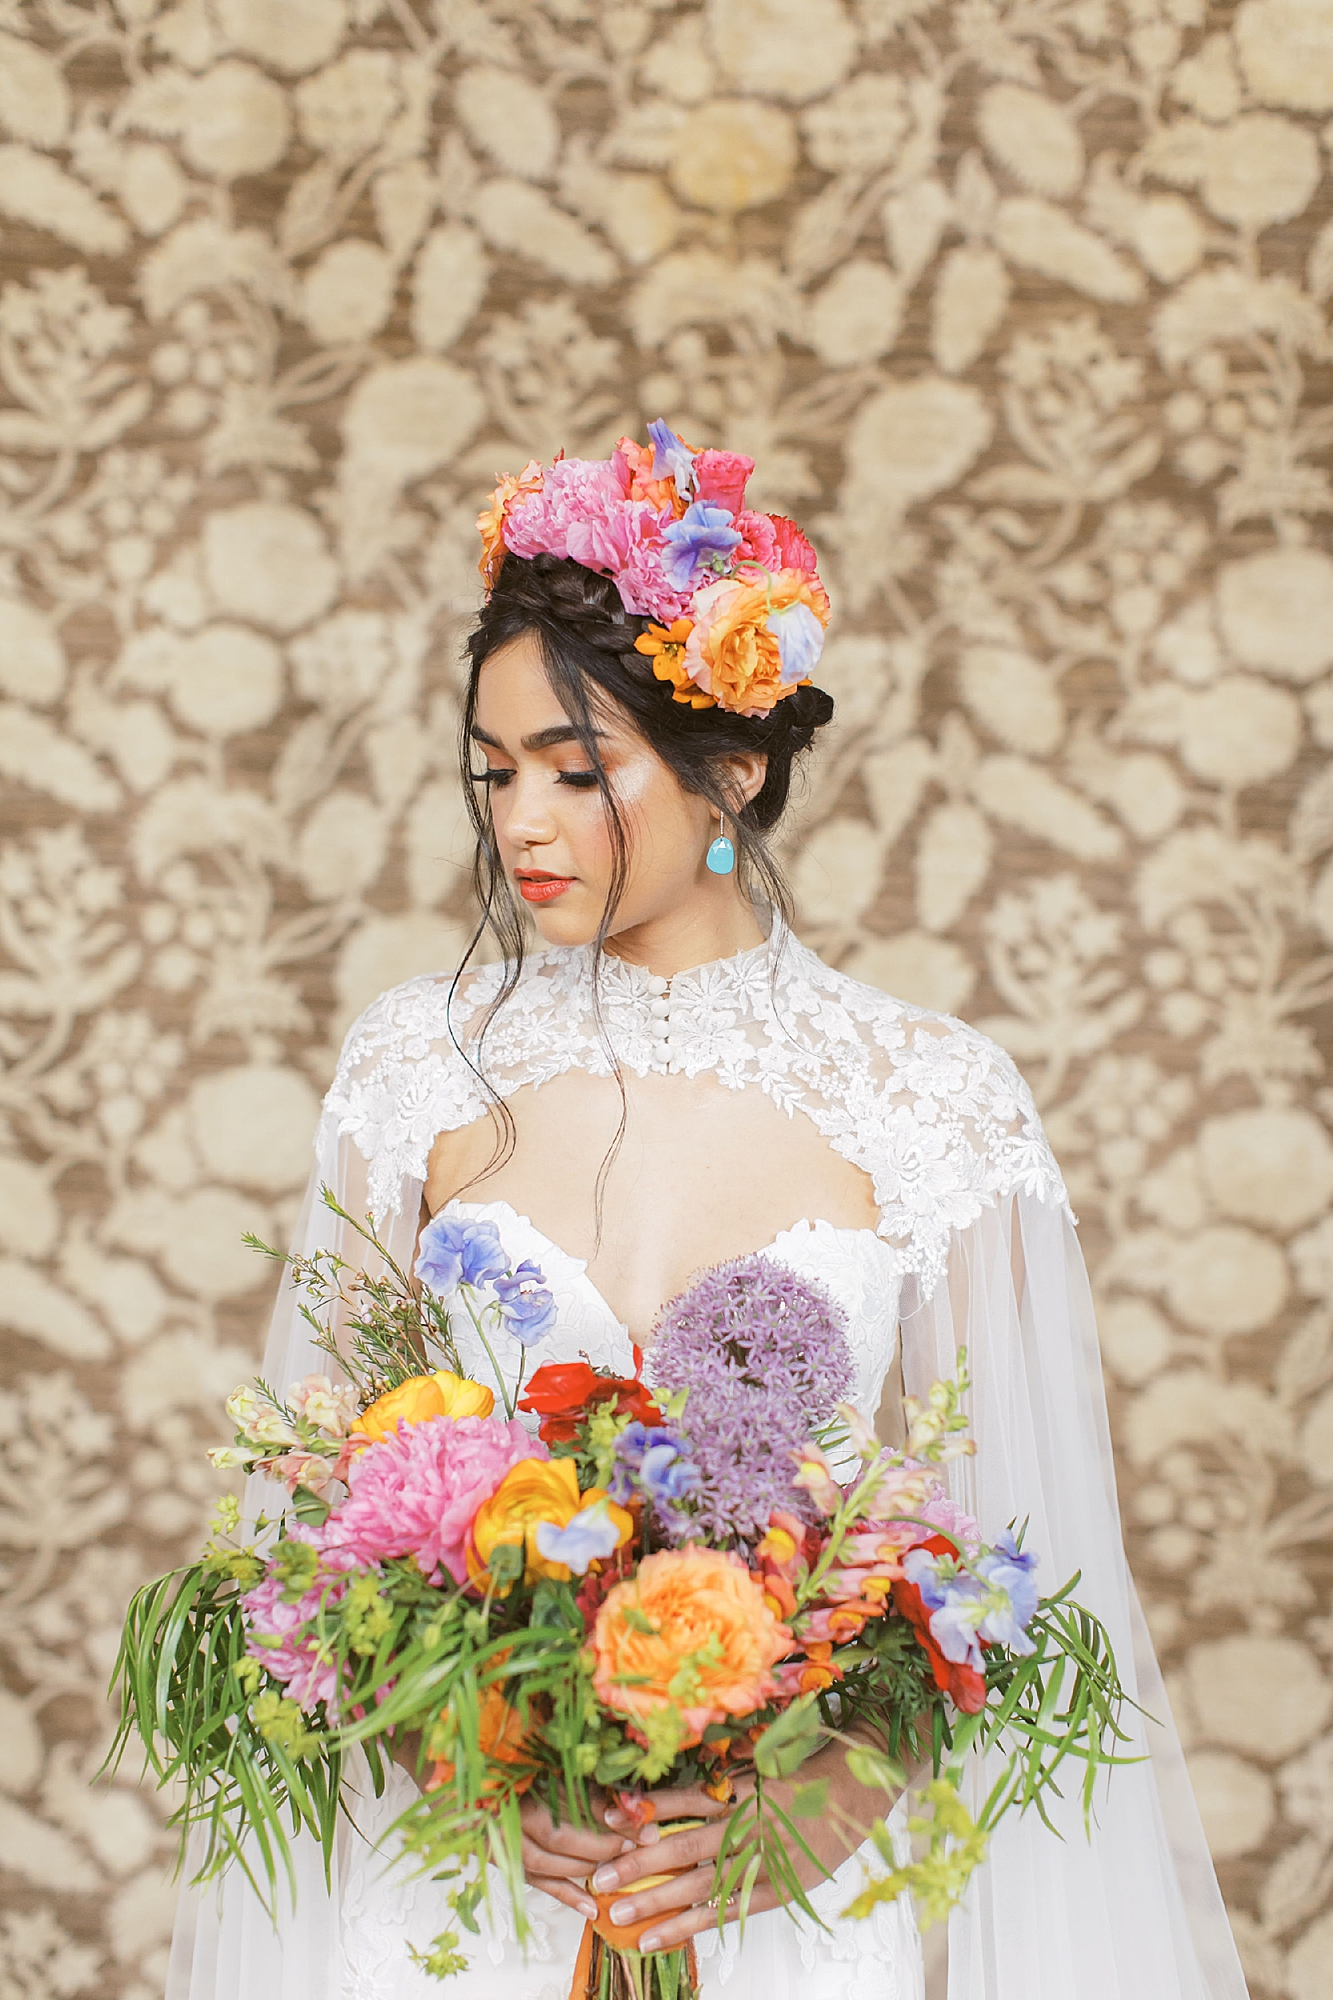 Vibrant and Colorful Frida Kahlo Inspired Wedding Photography by Magdalena Studios 0013